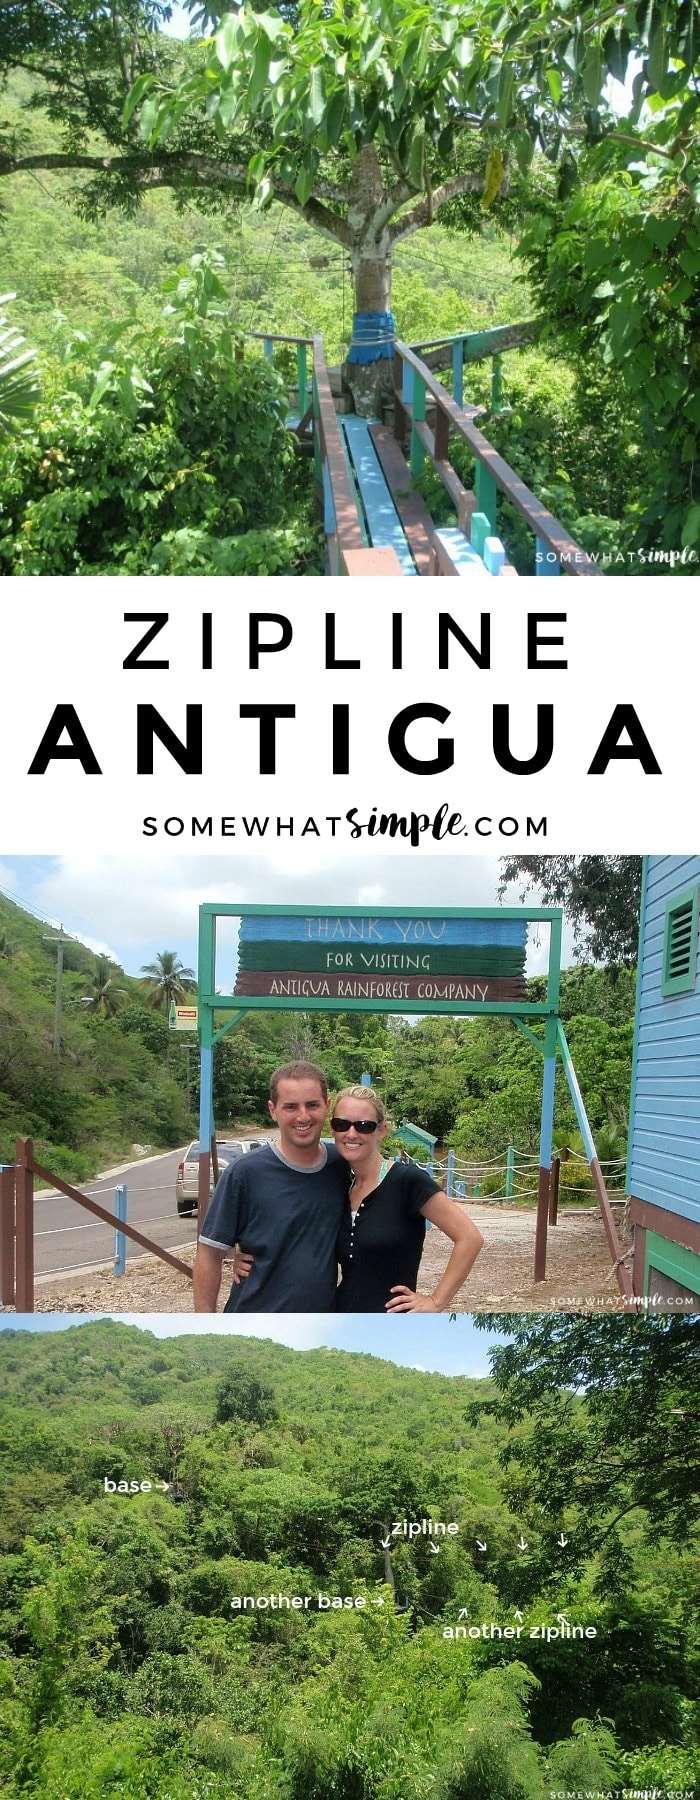 If you're looking for things to do in Antigua, ditch the beach and head to the beautiful forests for some zip lining fun!!! via @somewhatsimple